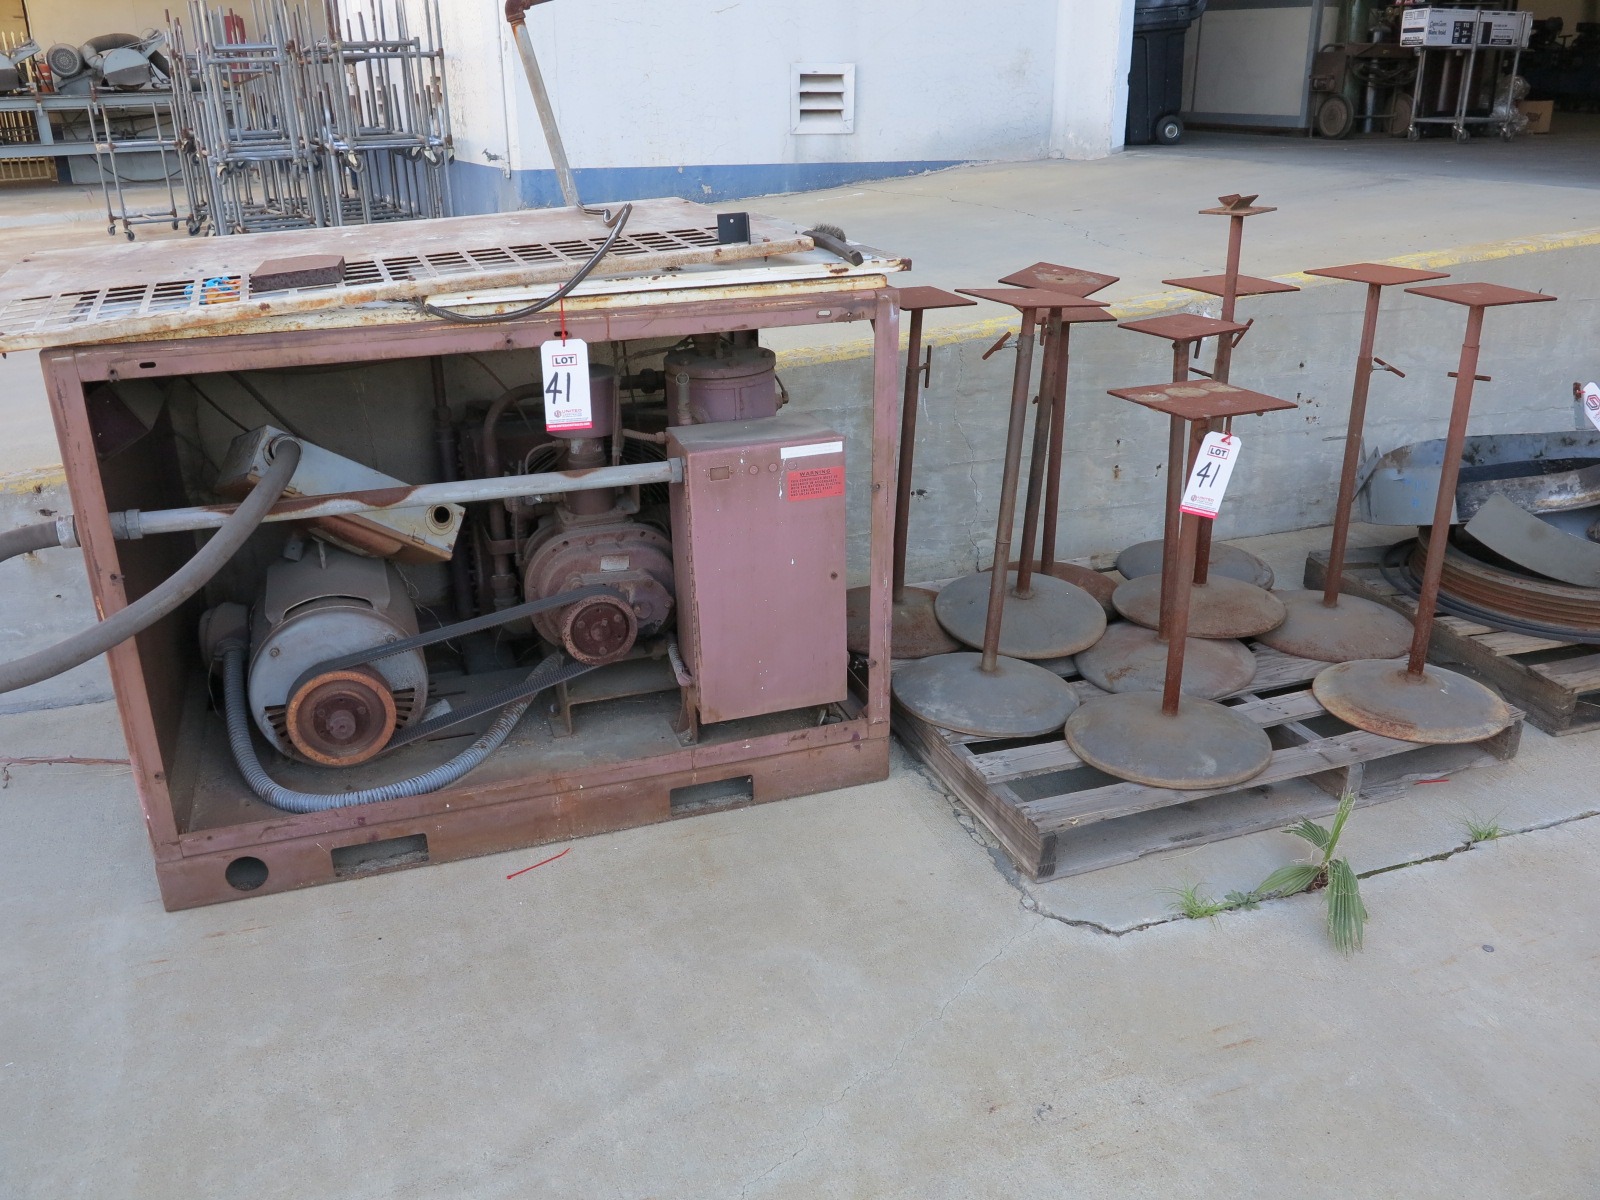 Lot 41 - LOT - MISC STEEL SCRAP TO INCLUDE OUT OF SERVICE AIR COMPRESSOR, ETC.